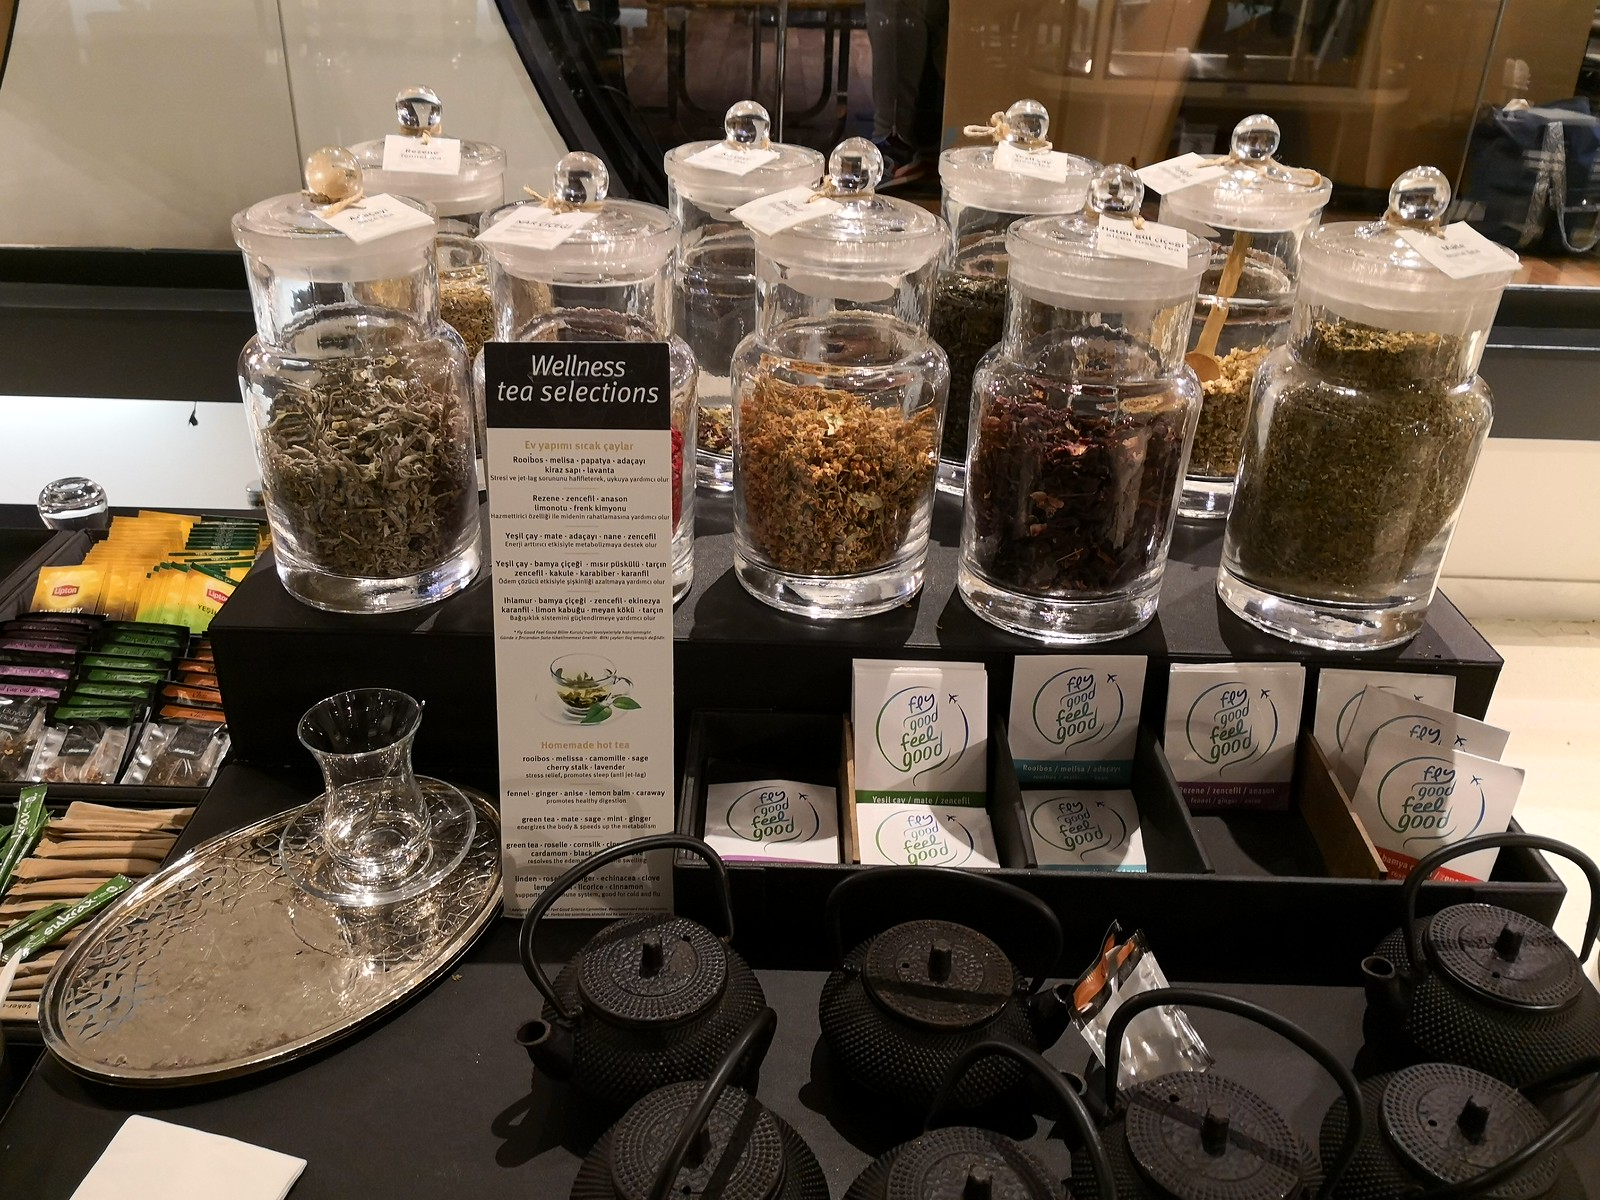 Wellness tea selections